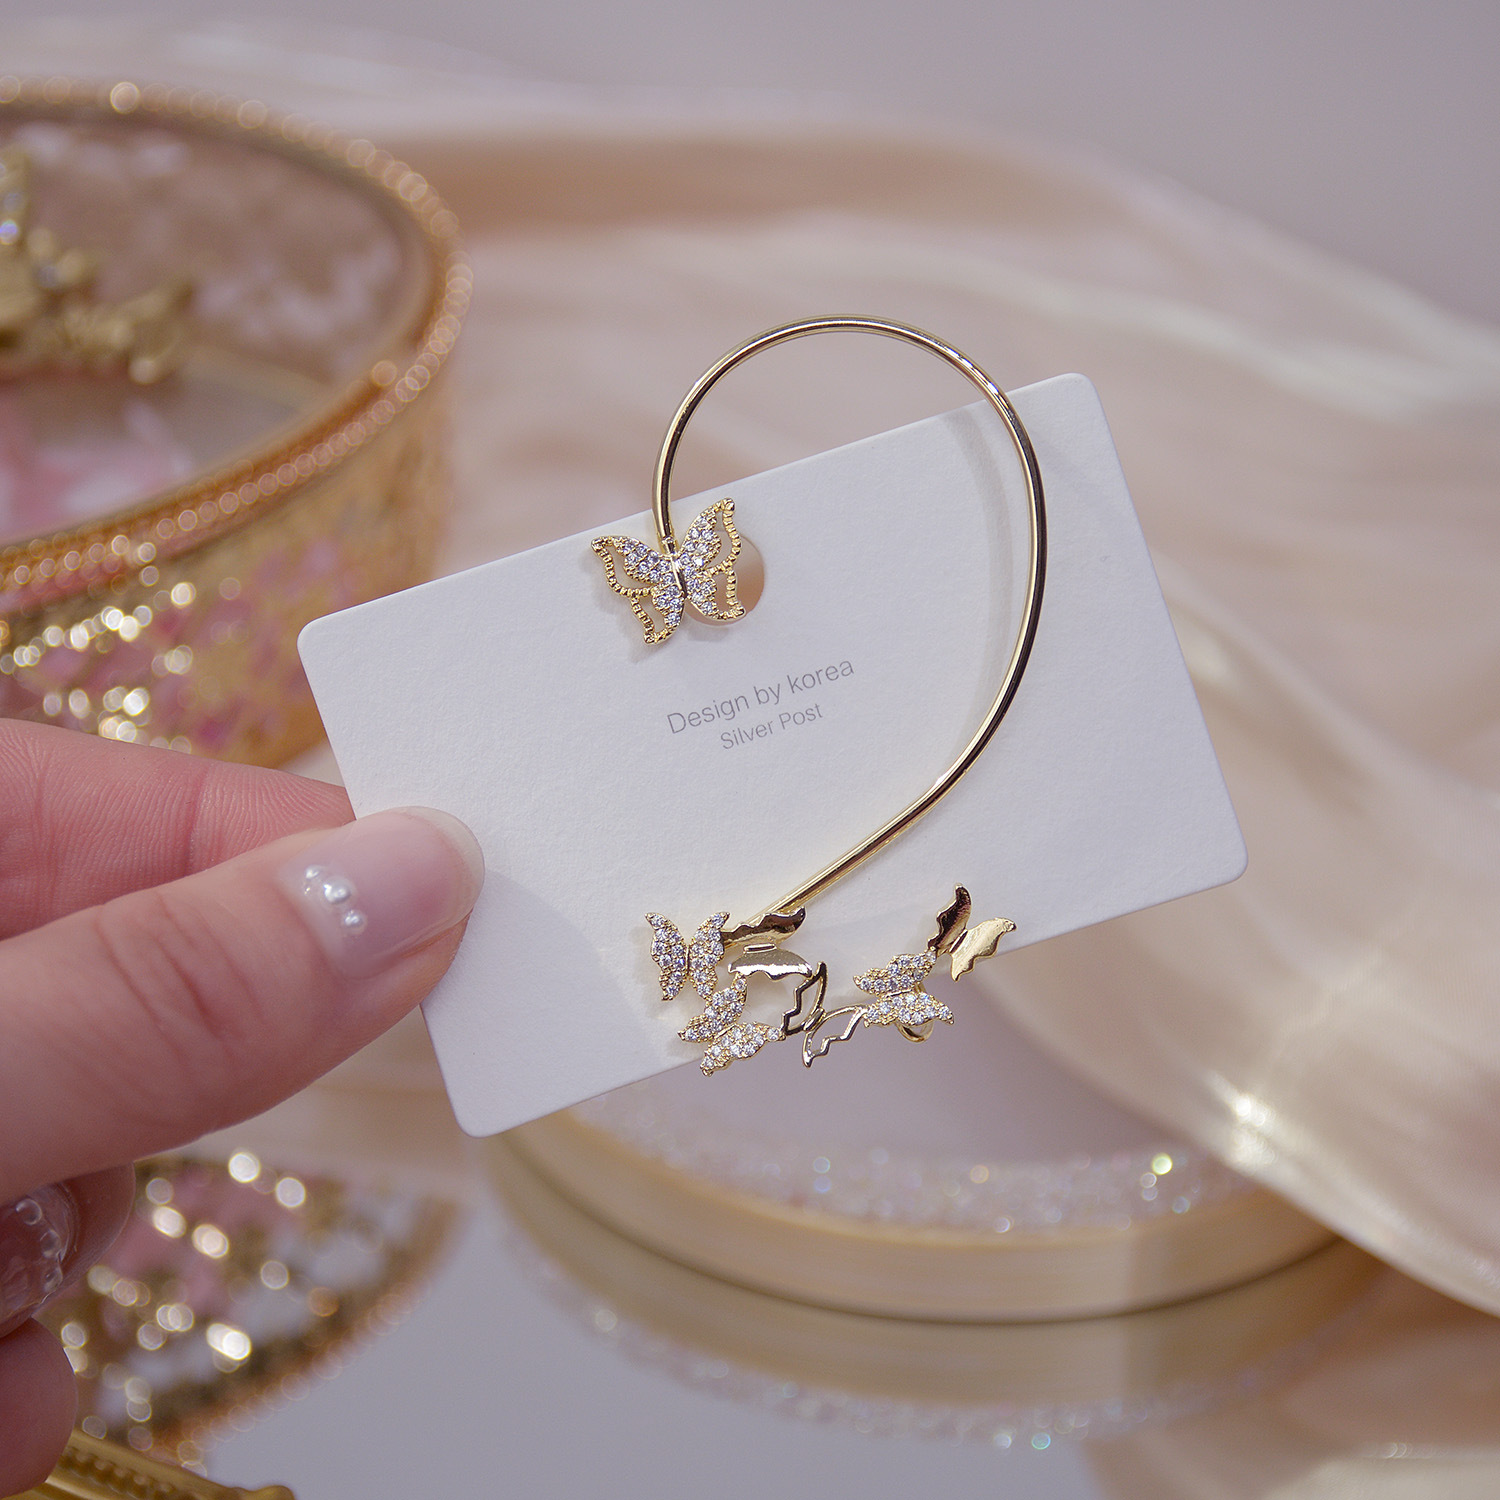 Korean new design fashion jewelry exquisite light luxury copper inlaid zircon exaggerated butterfly ear bone clip female earring